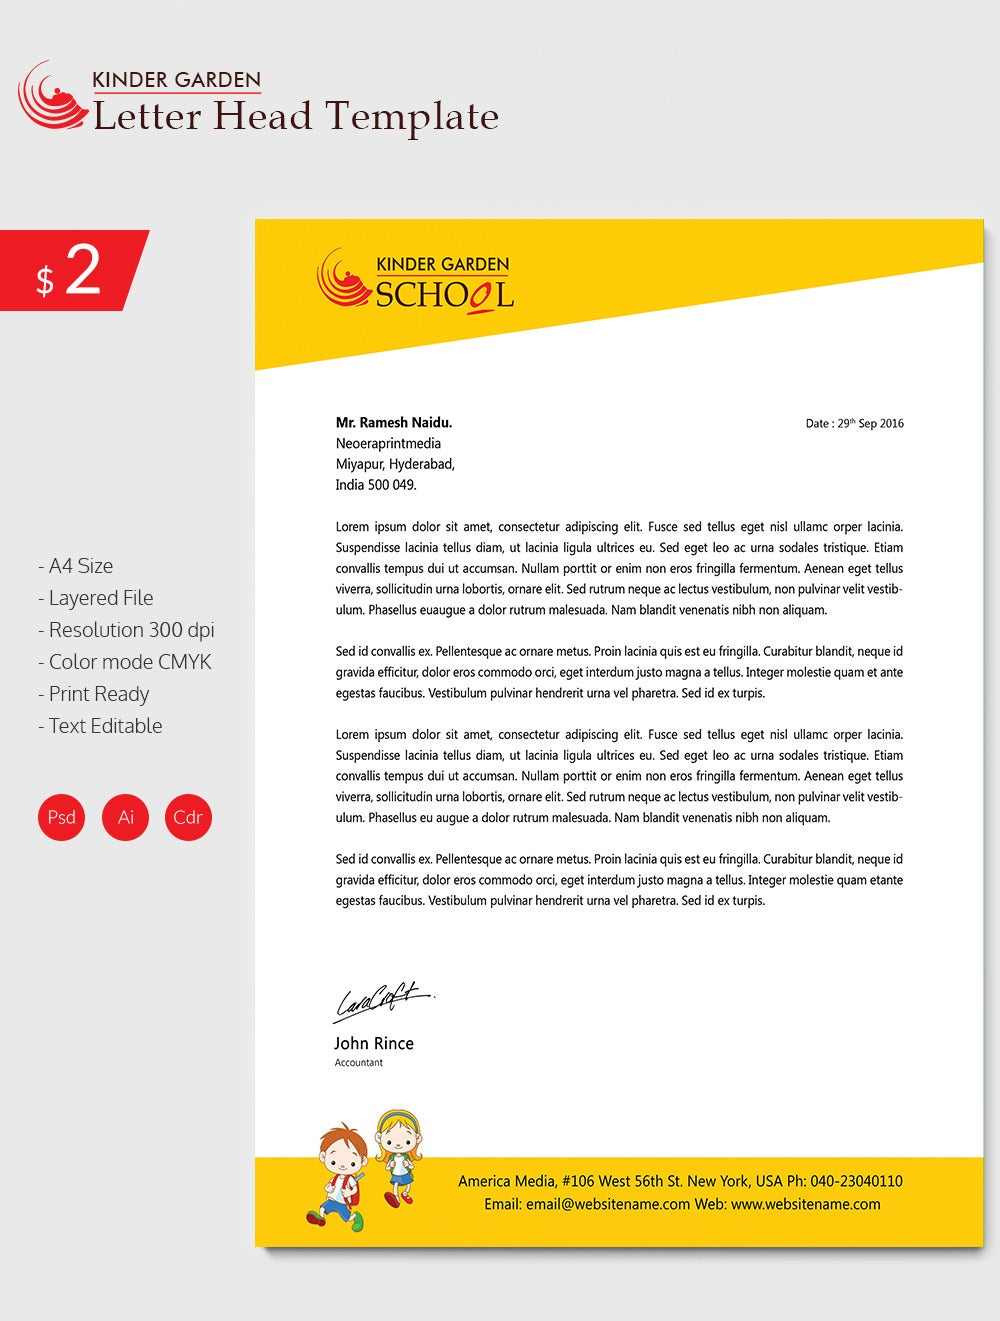 22 letterhead design templates free sample example format amazing kindergarten school letterhead download thecheapjerseys Choice Image